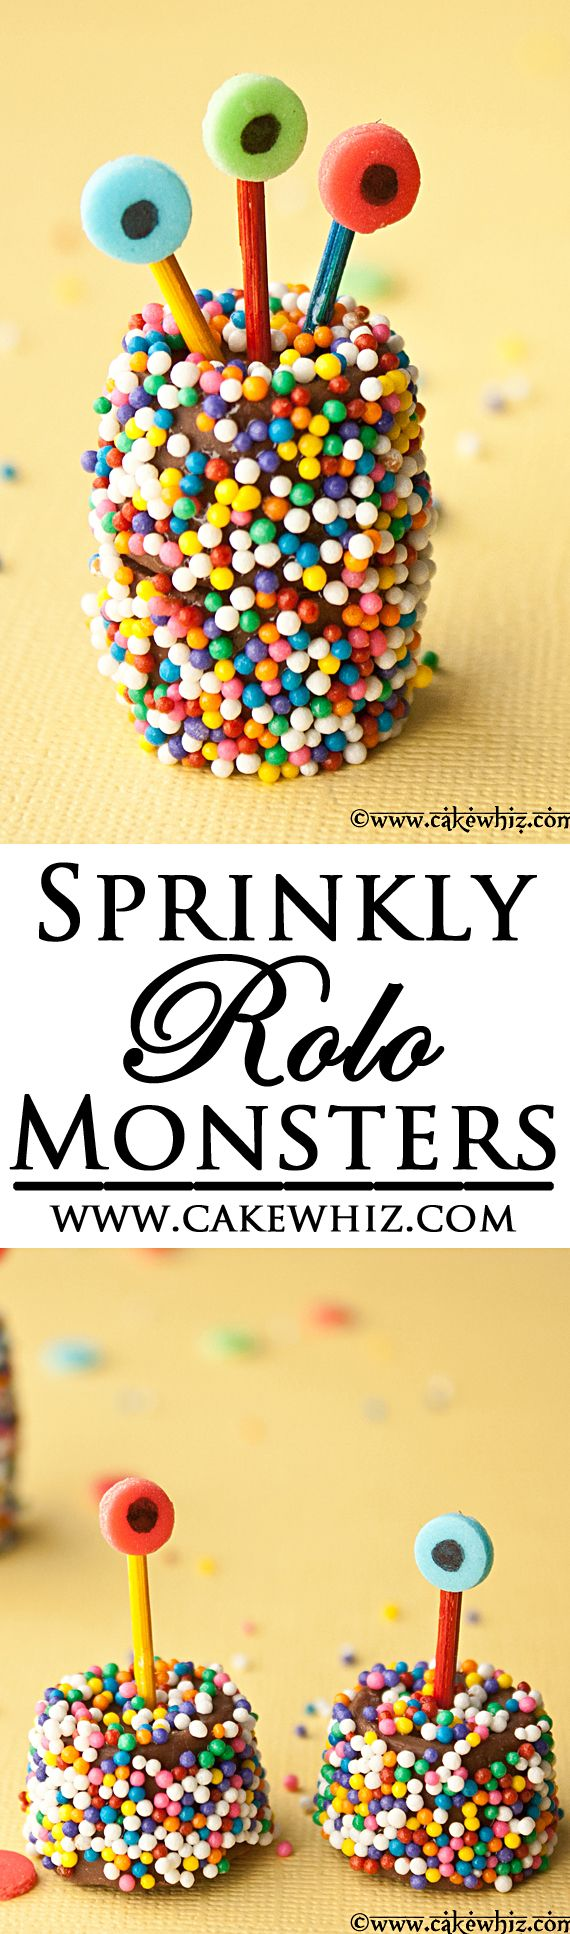 These cute and sprinkly ROLO CHOCOLATE MONSTERS are a perfect treat for Halloween. It's an easy edible craft to do with kids, using basic store-bought supplies! From cakewhiz.com